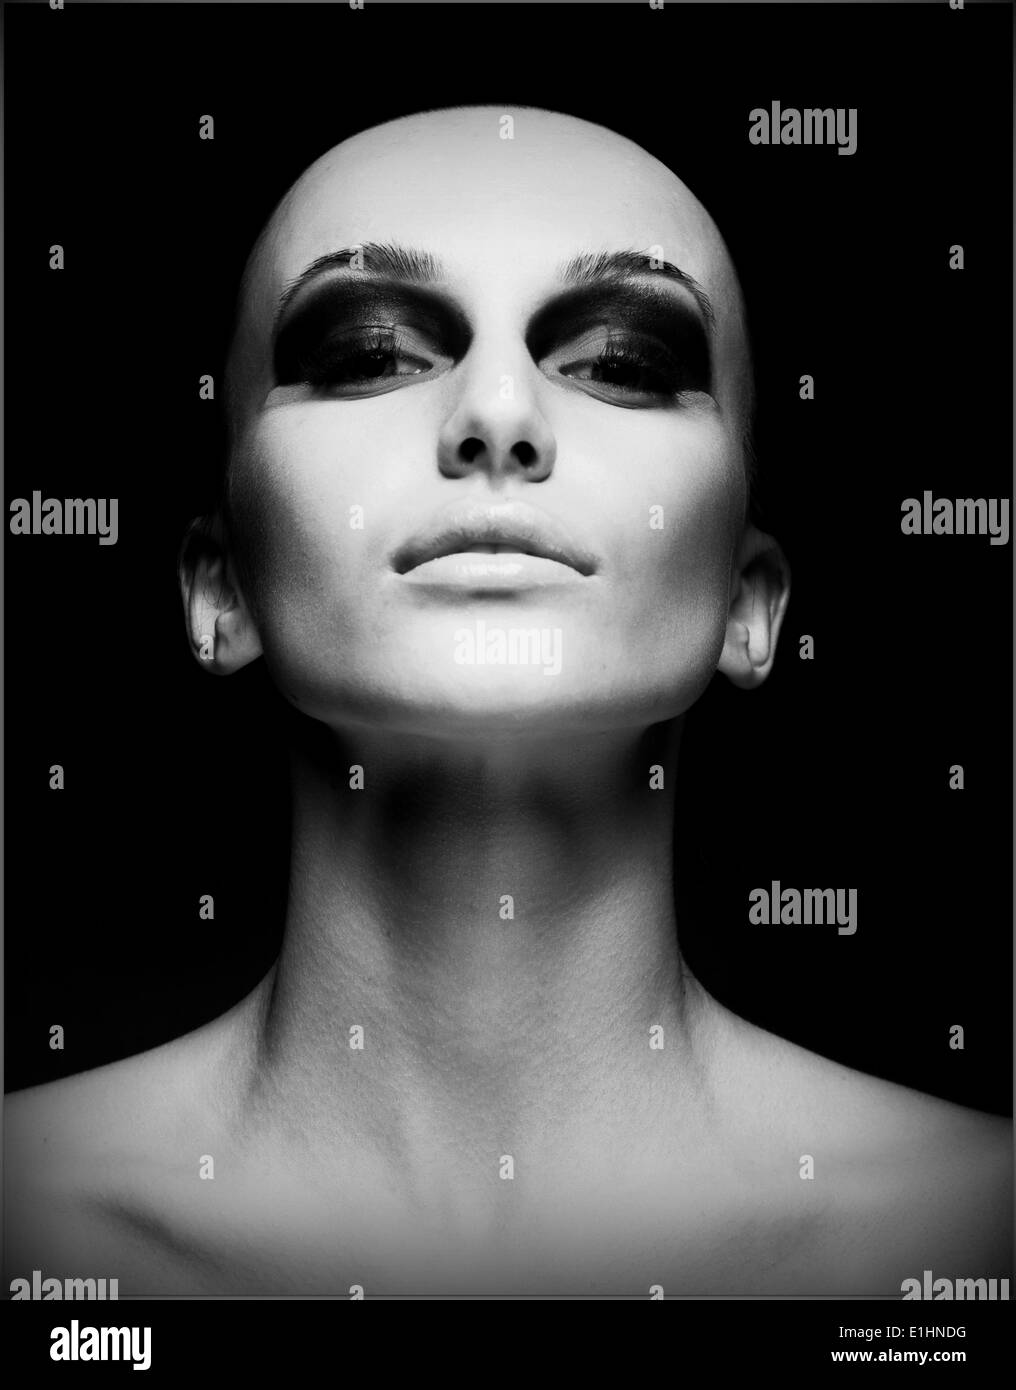 Extreme. Portrait of Eccentric Hairless Woman. Shaved Skull. Futurism - Stock Image